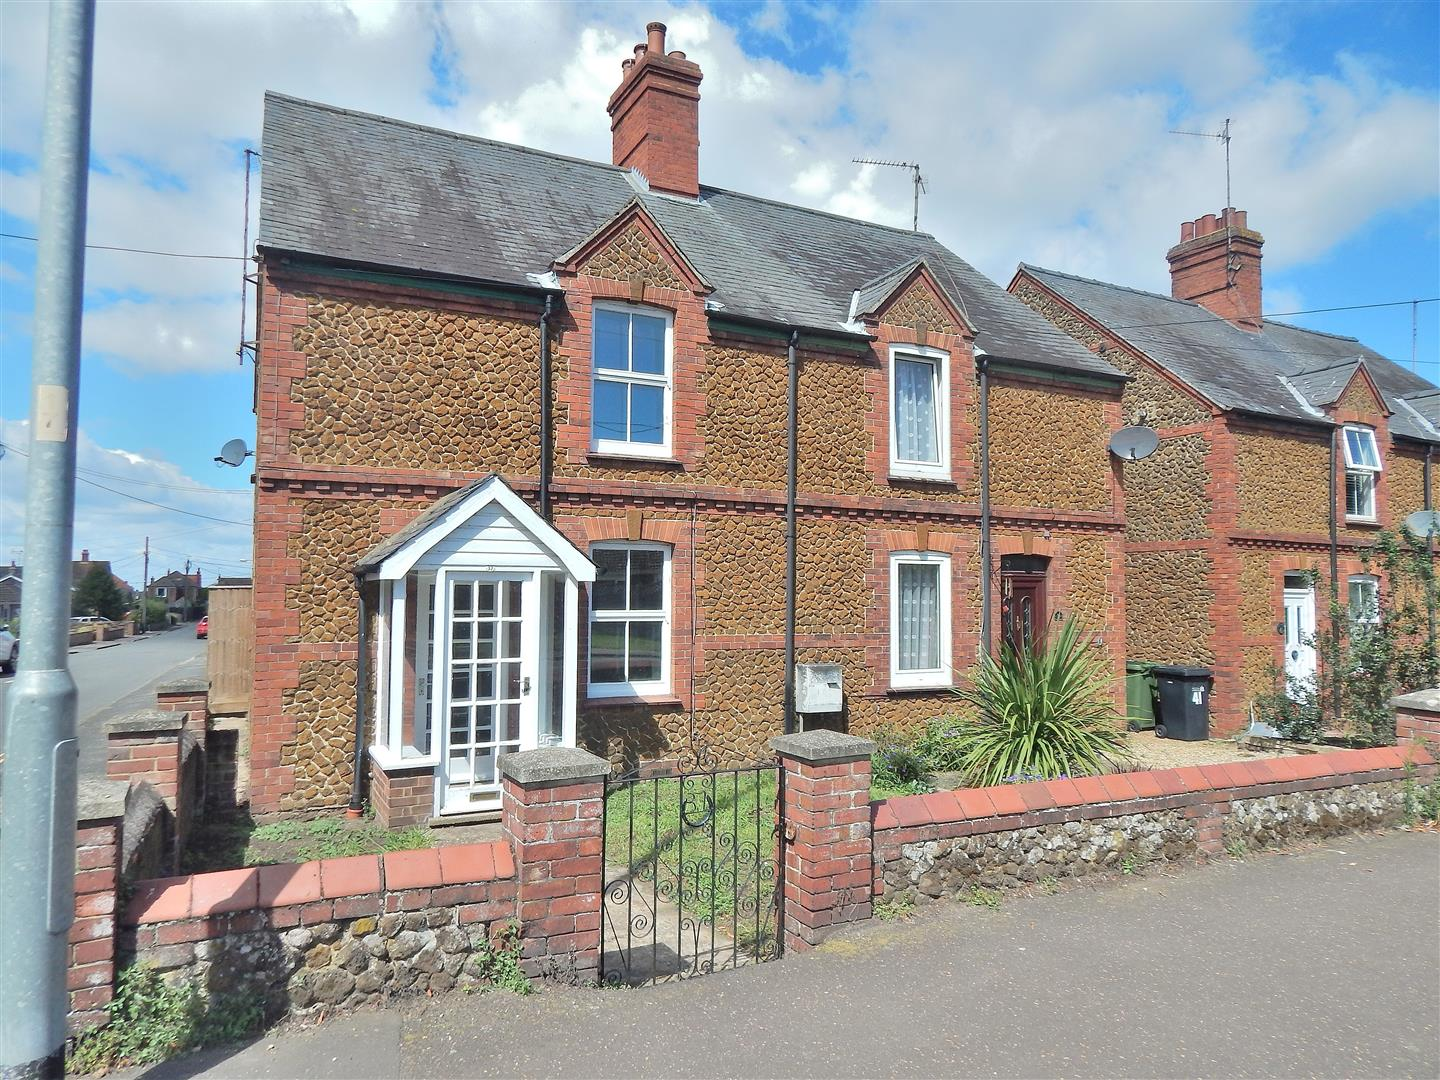 2 bed semi-detached house for sale in King's Lynn, PE31 6NA - Property Image 1